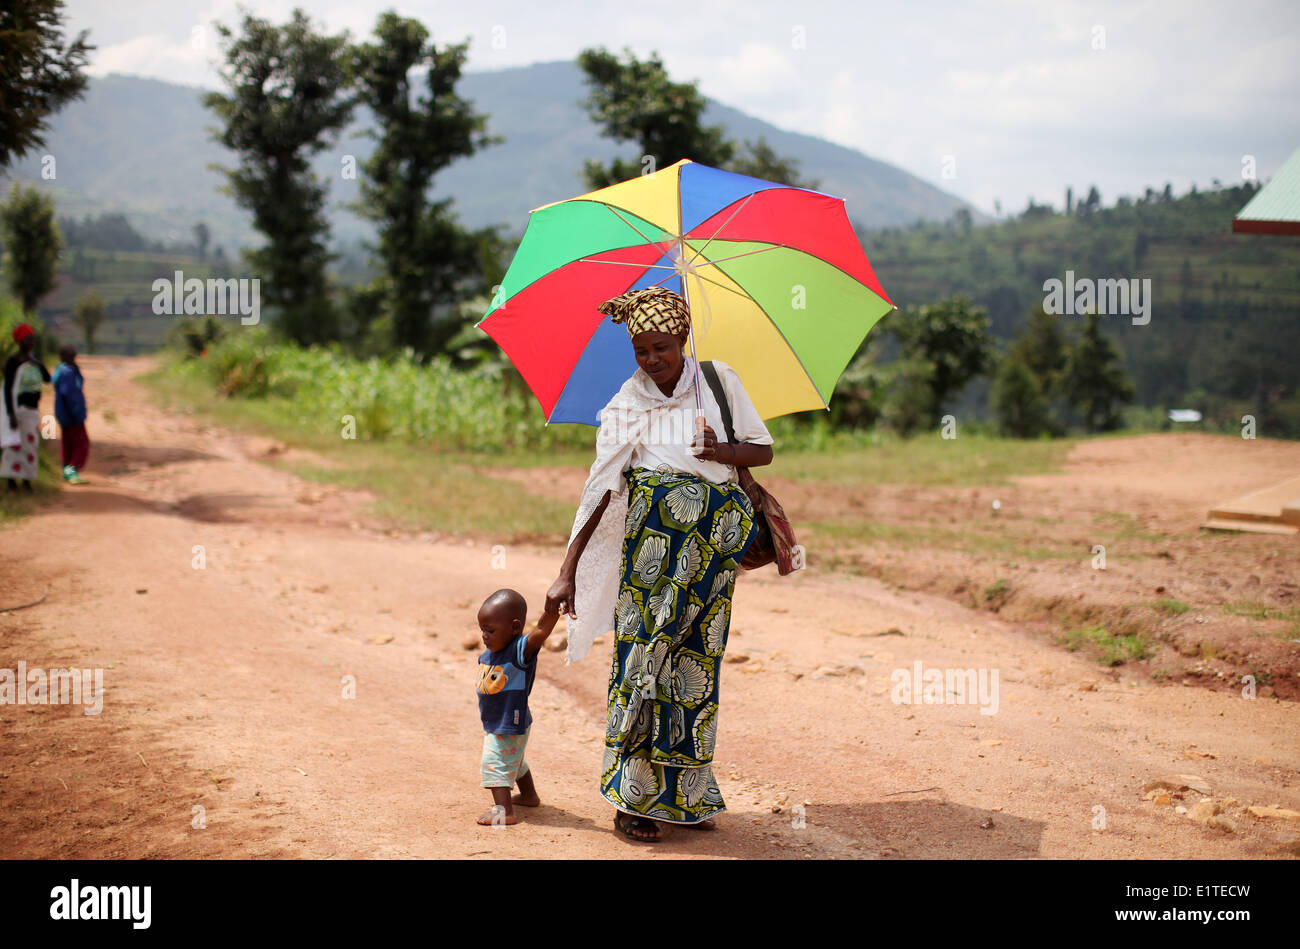 A mother and child at their village in the Murambi sector in the Rulindo district of Northern Province, Rwanda. - Stock Image